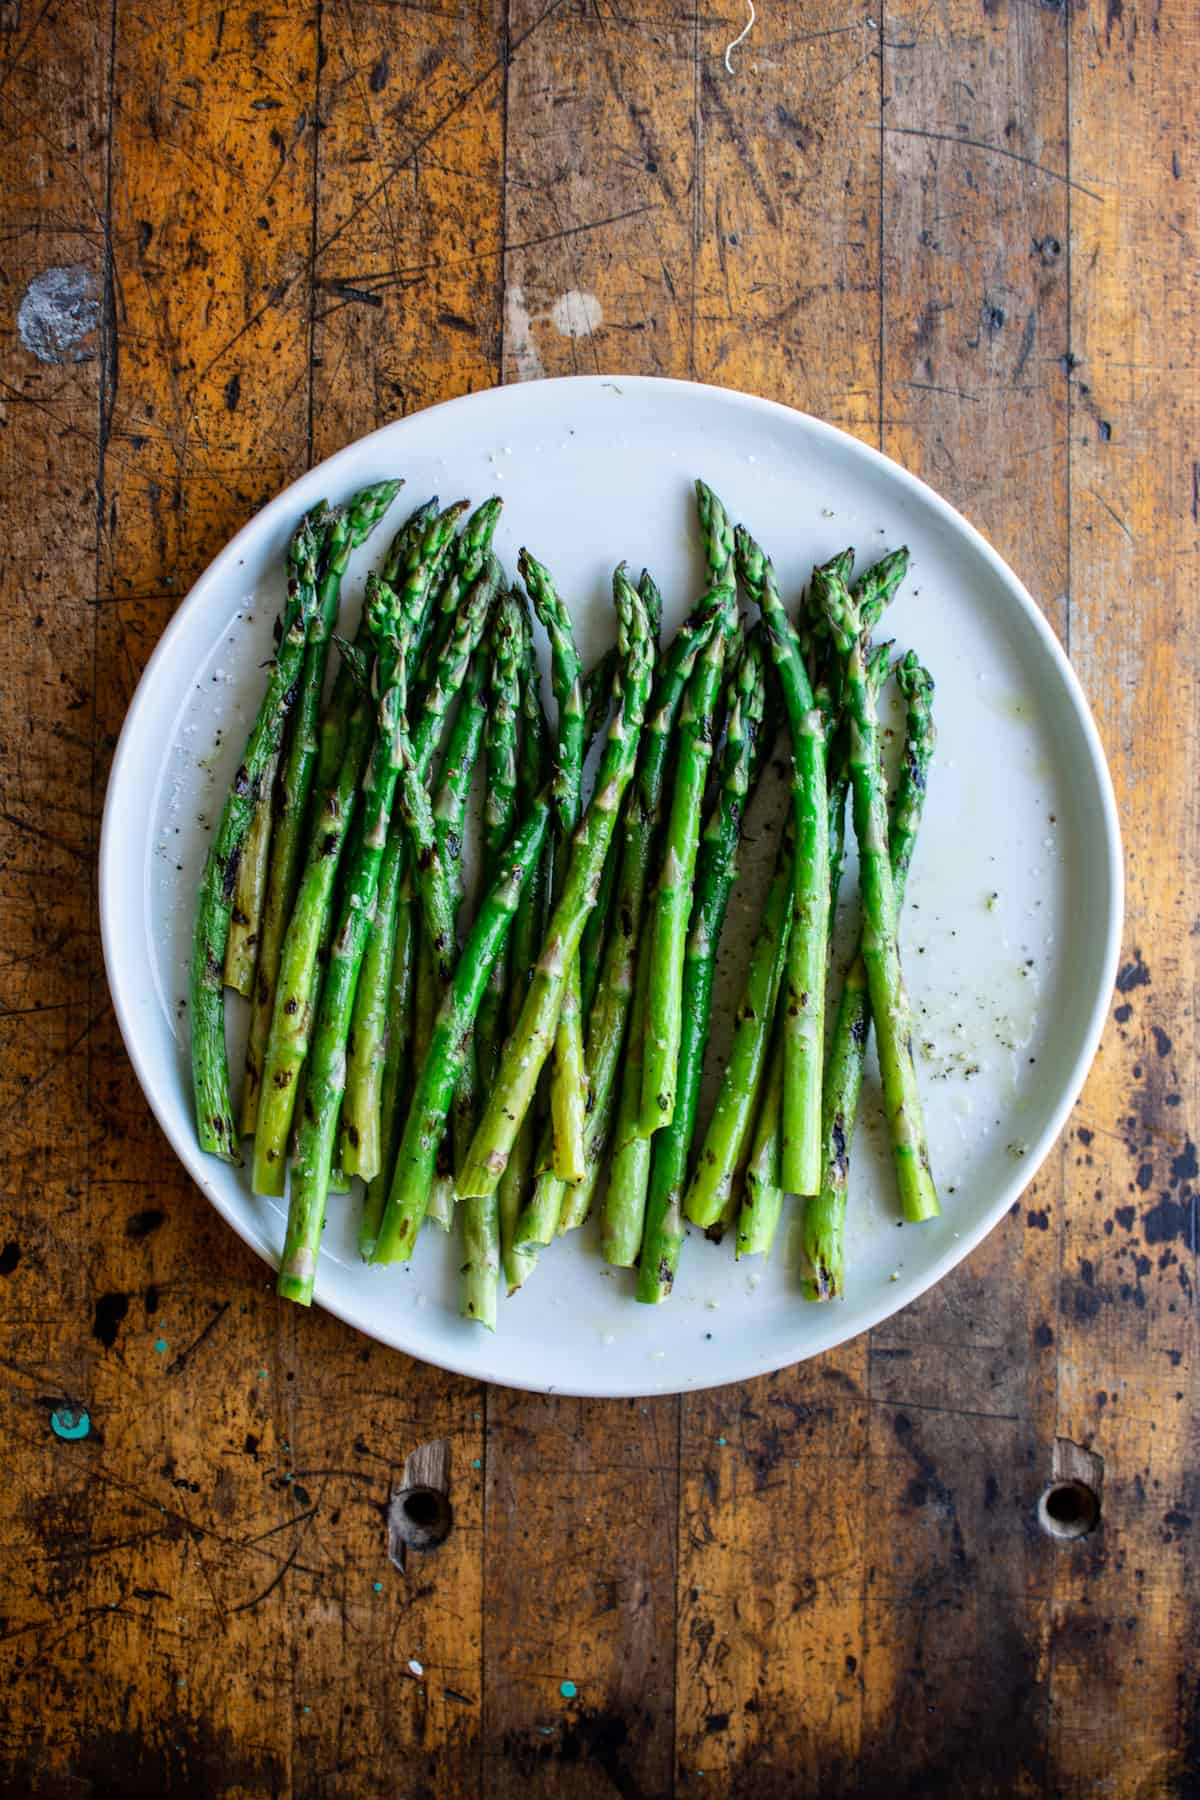 A white plate sitting on a wood table with grilled asparagus on it.